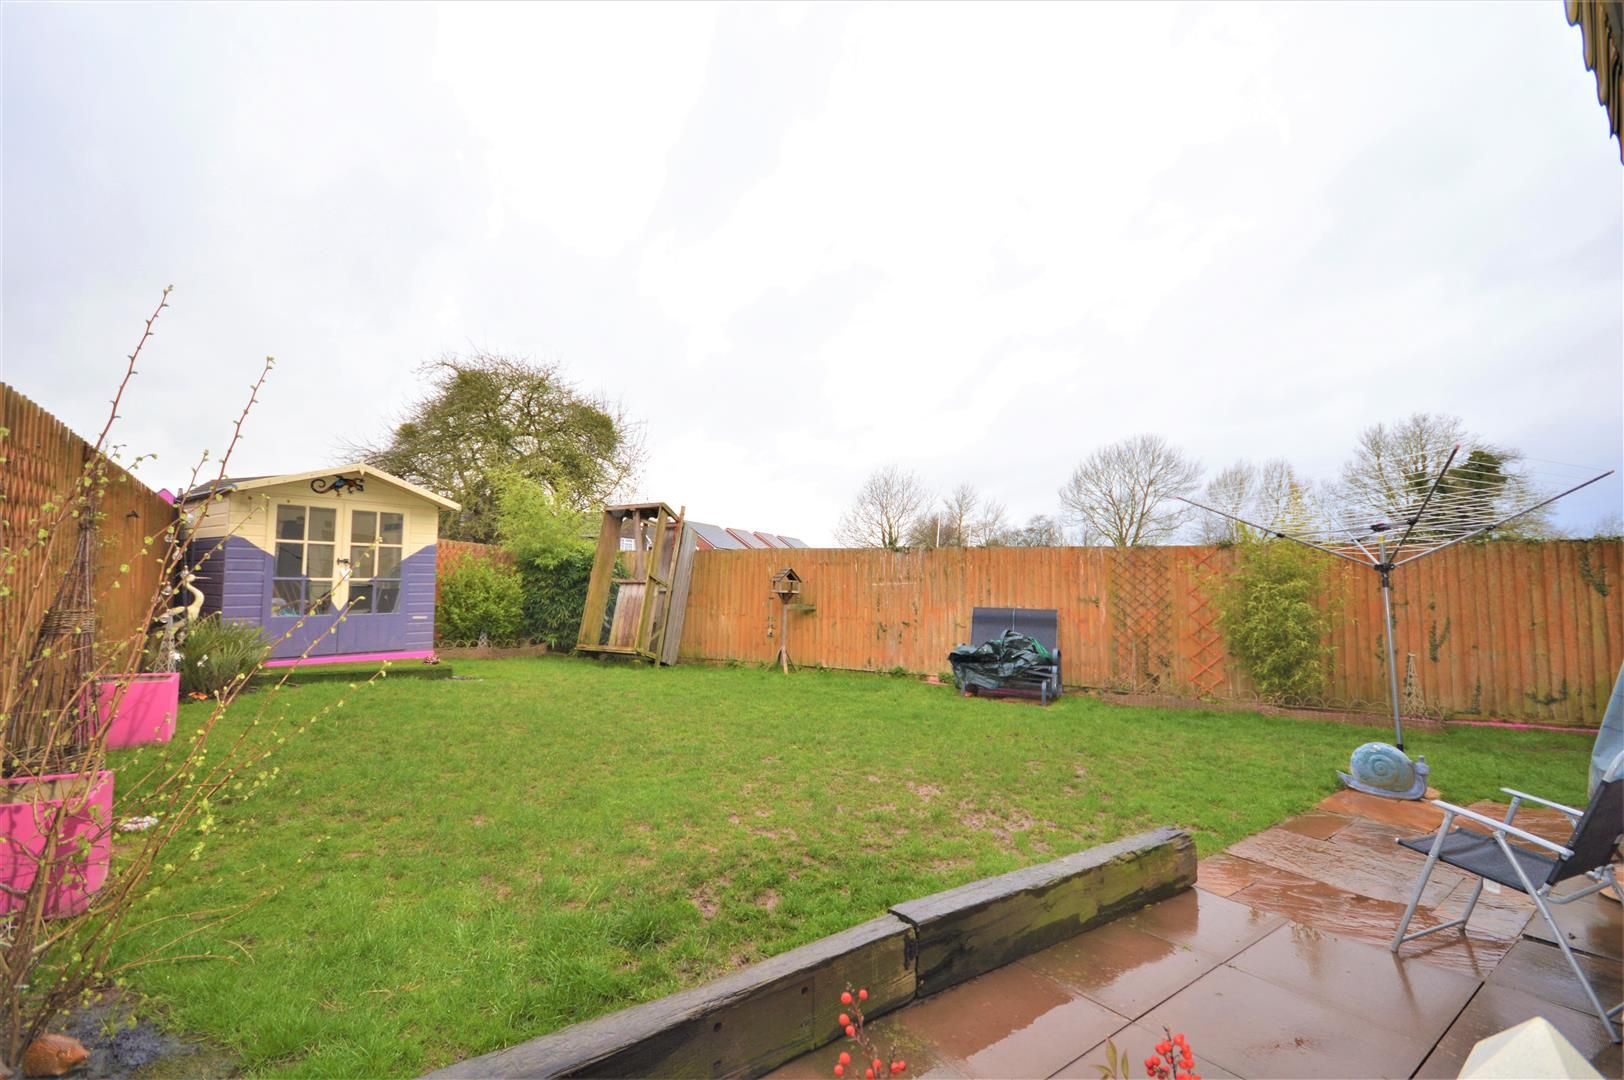 5 bed detached for sale in Kingstone 18